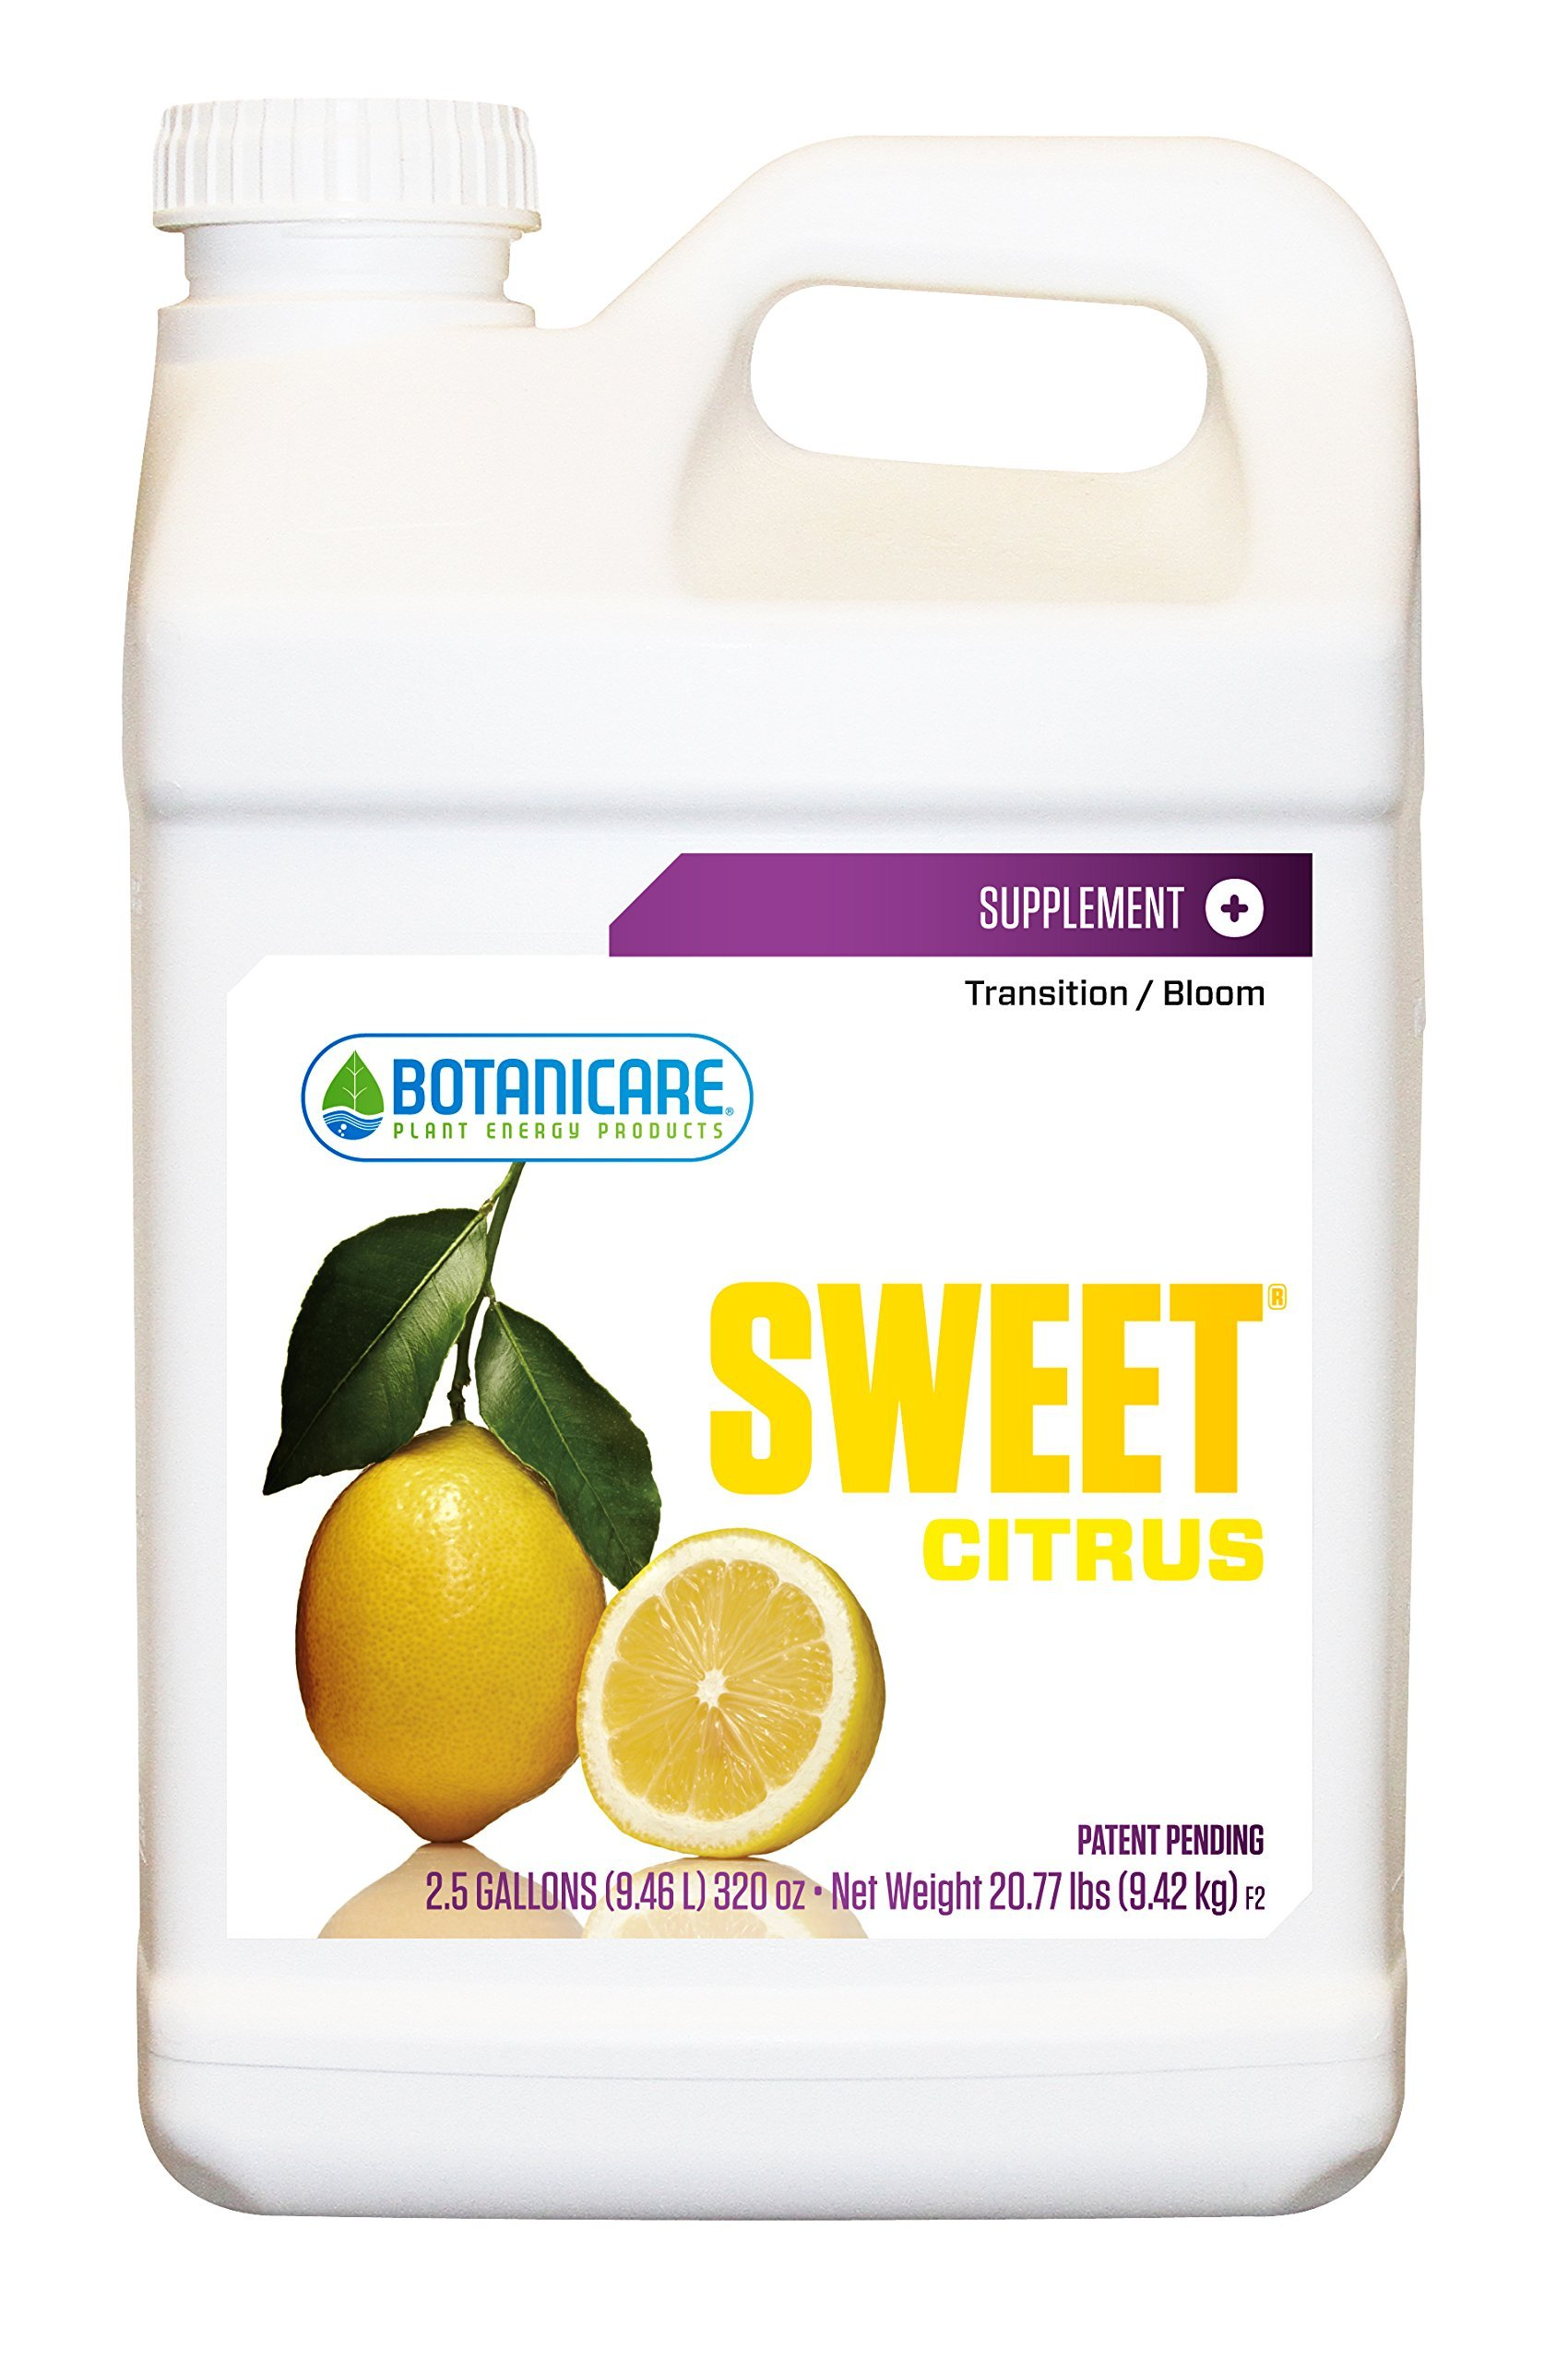 Botanicare SWEET CITRUS Mineral Supplement, 2.5-Gallon